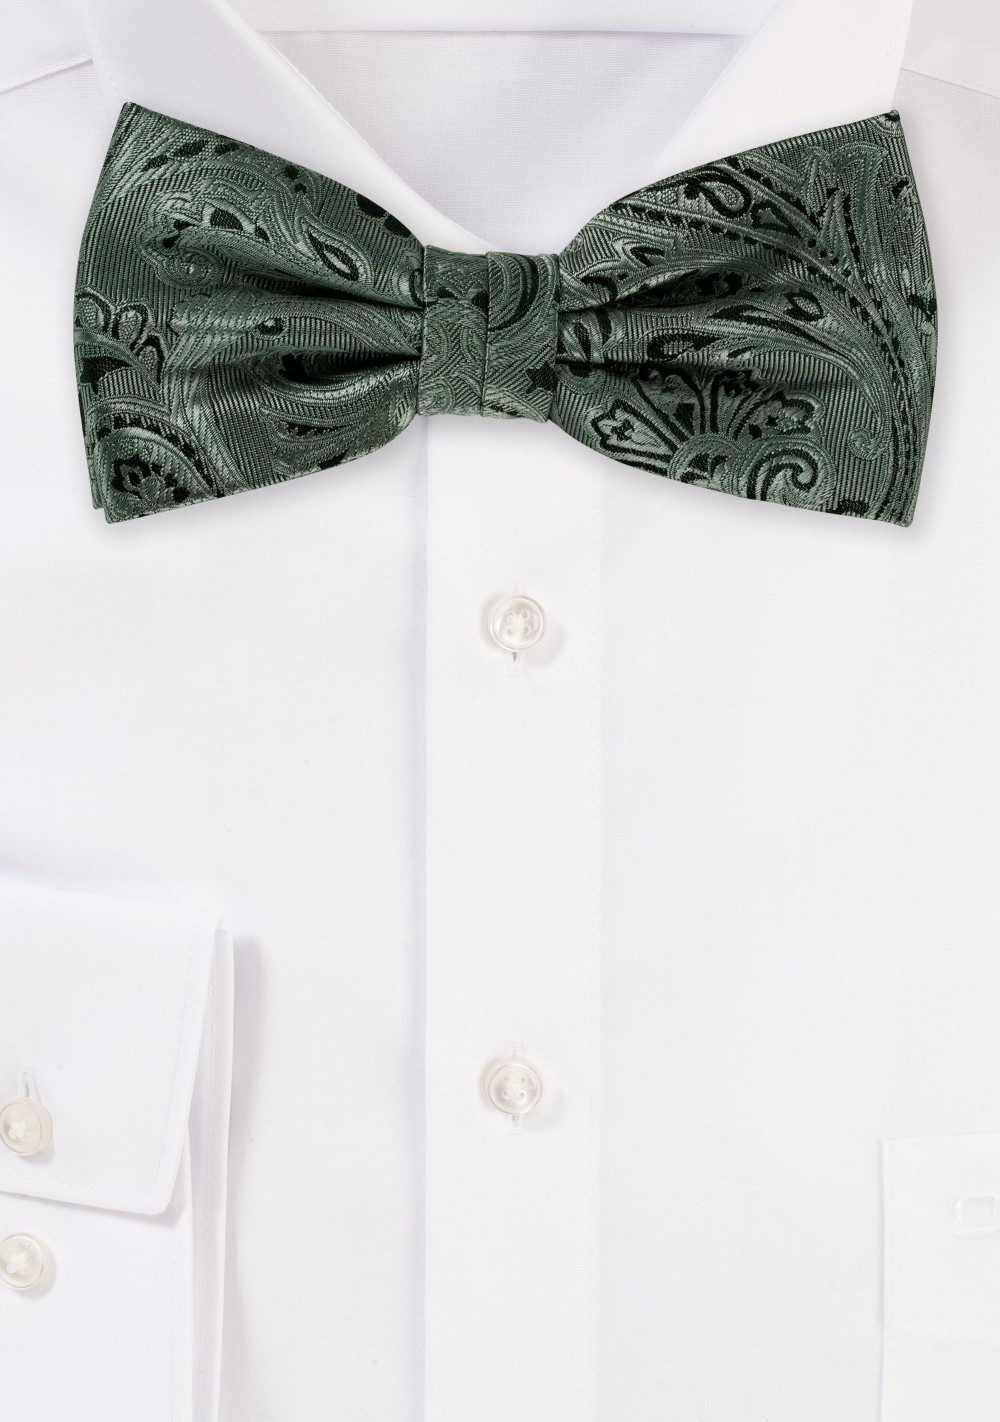 Moss Green Paisley Bow Tie